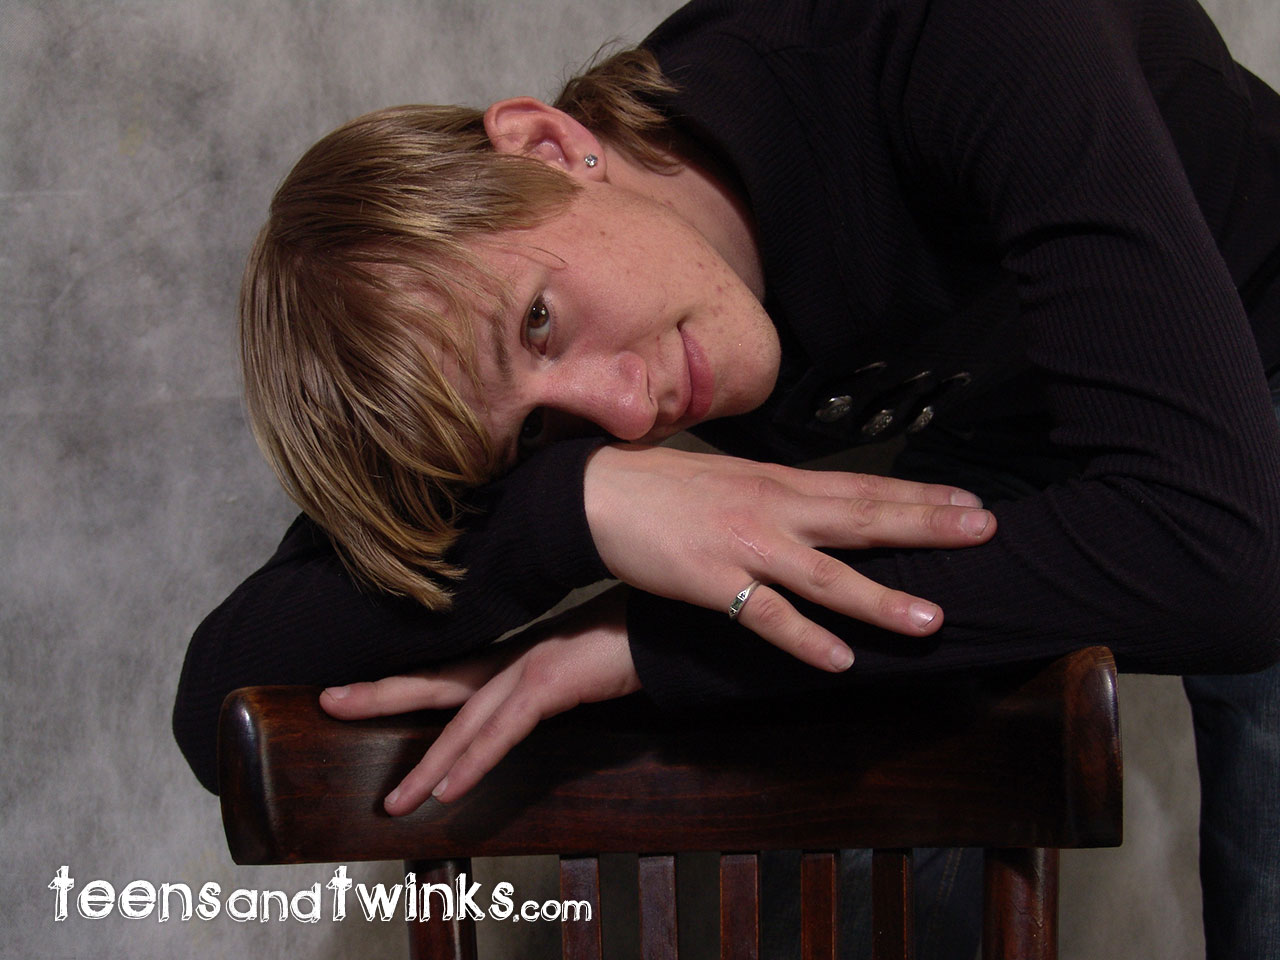 Teens-and-Twinks-Mark-Blonde-Twink-With-A-Huge-Cock-Masturbating-Amateur-Gay-Porn-01.jpg